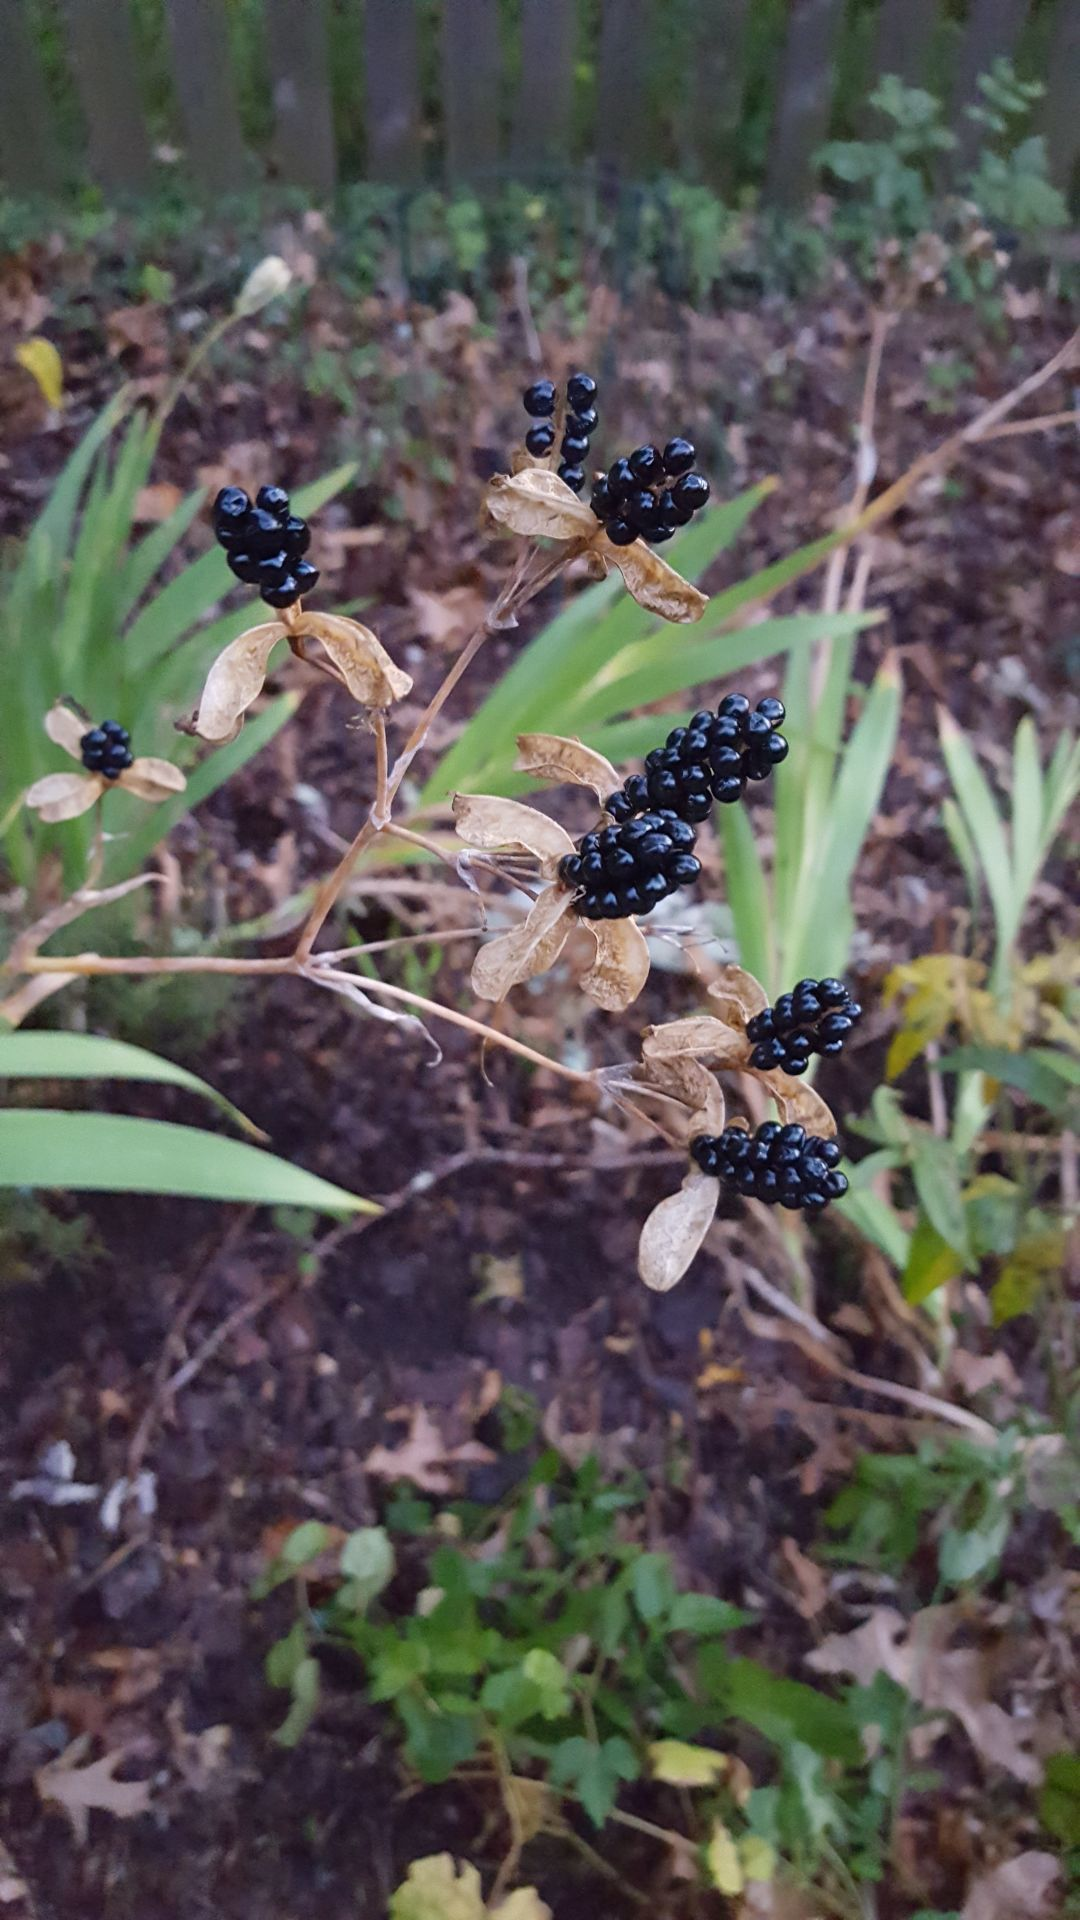 20190728-gm-garden-blackberry seed pod.jpg